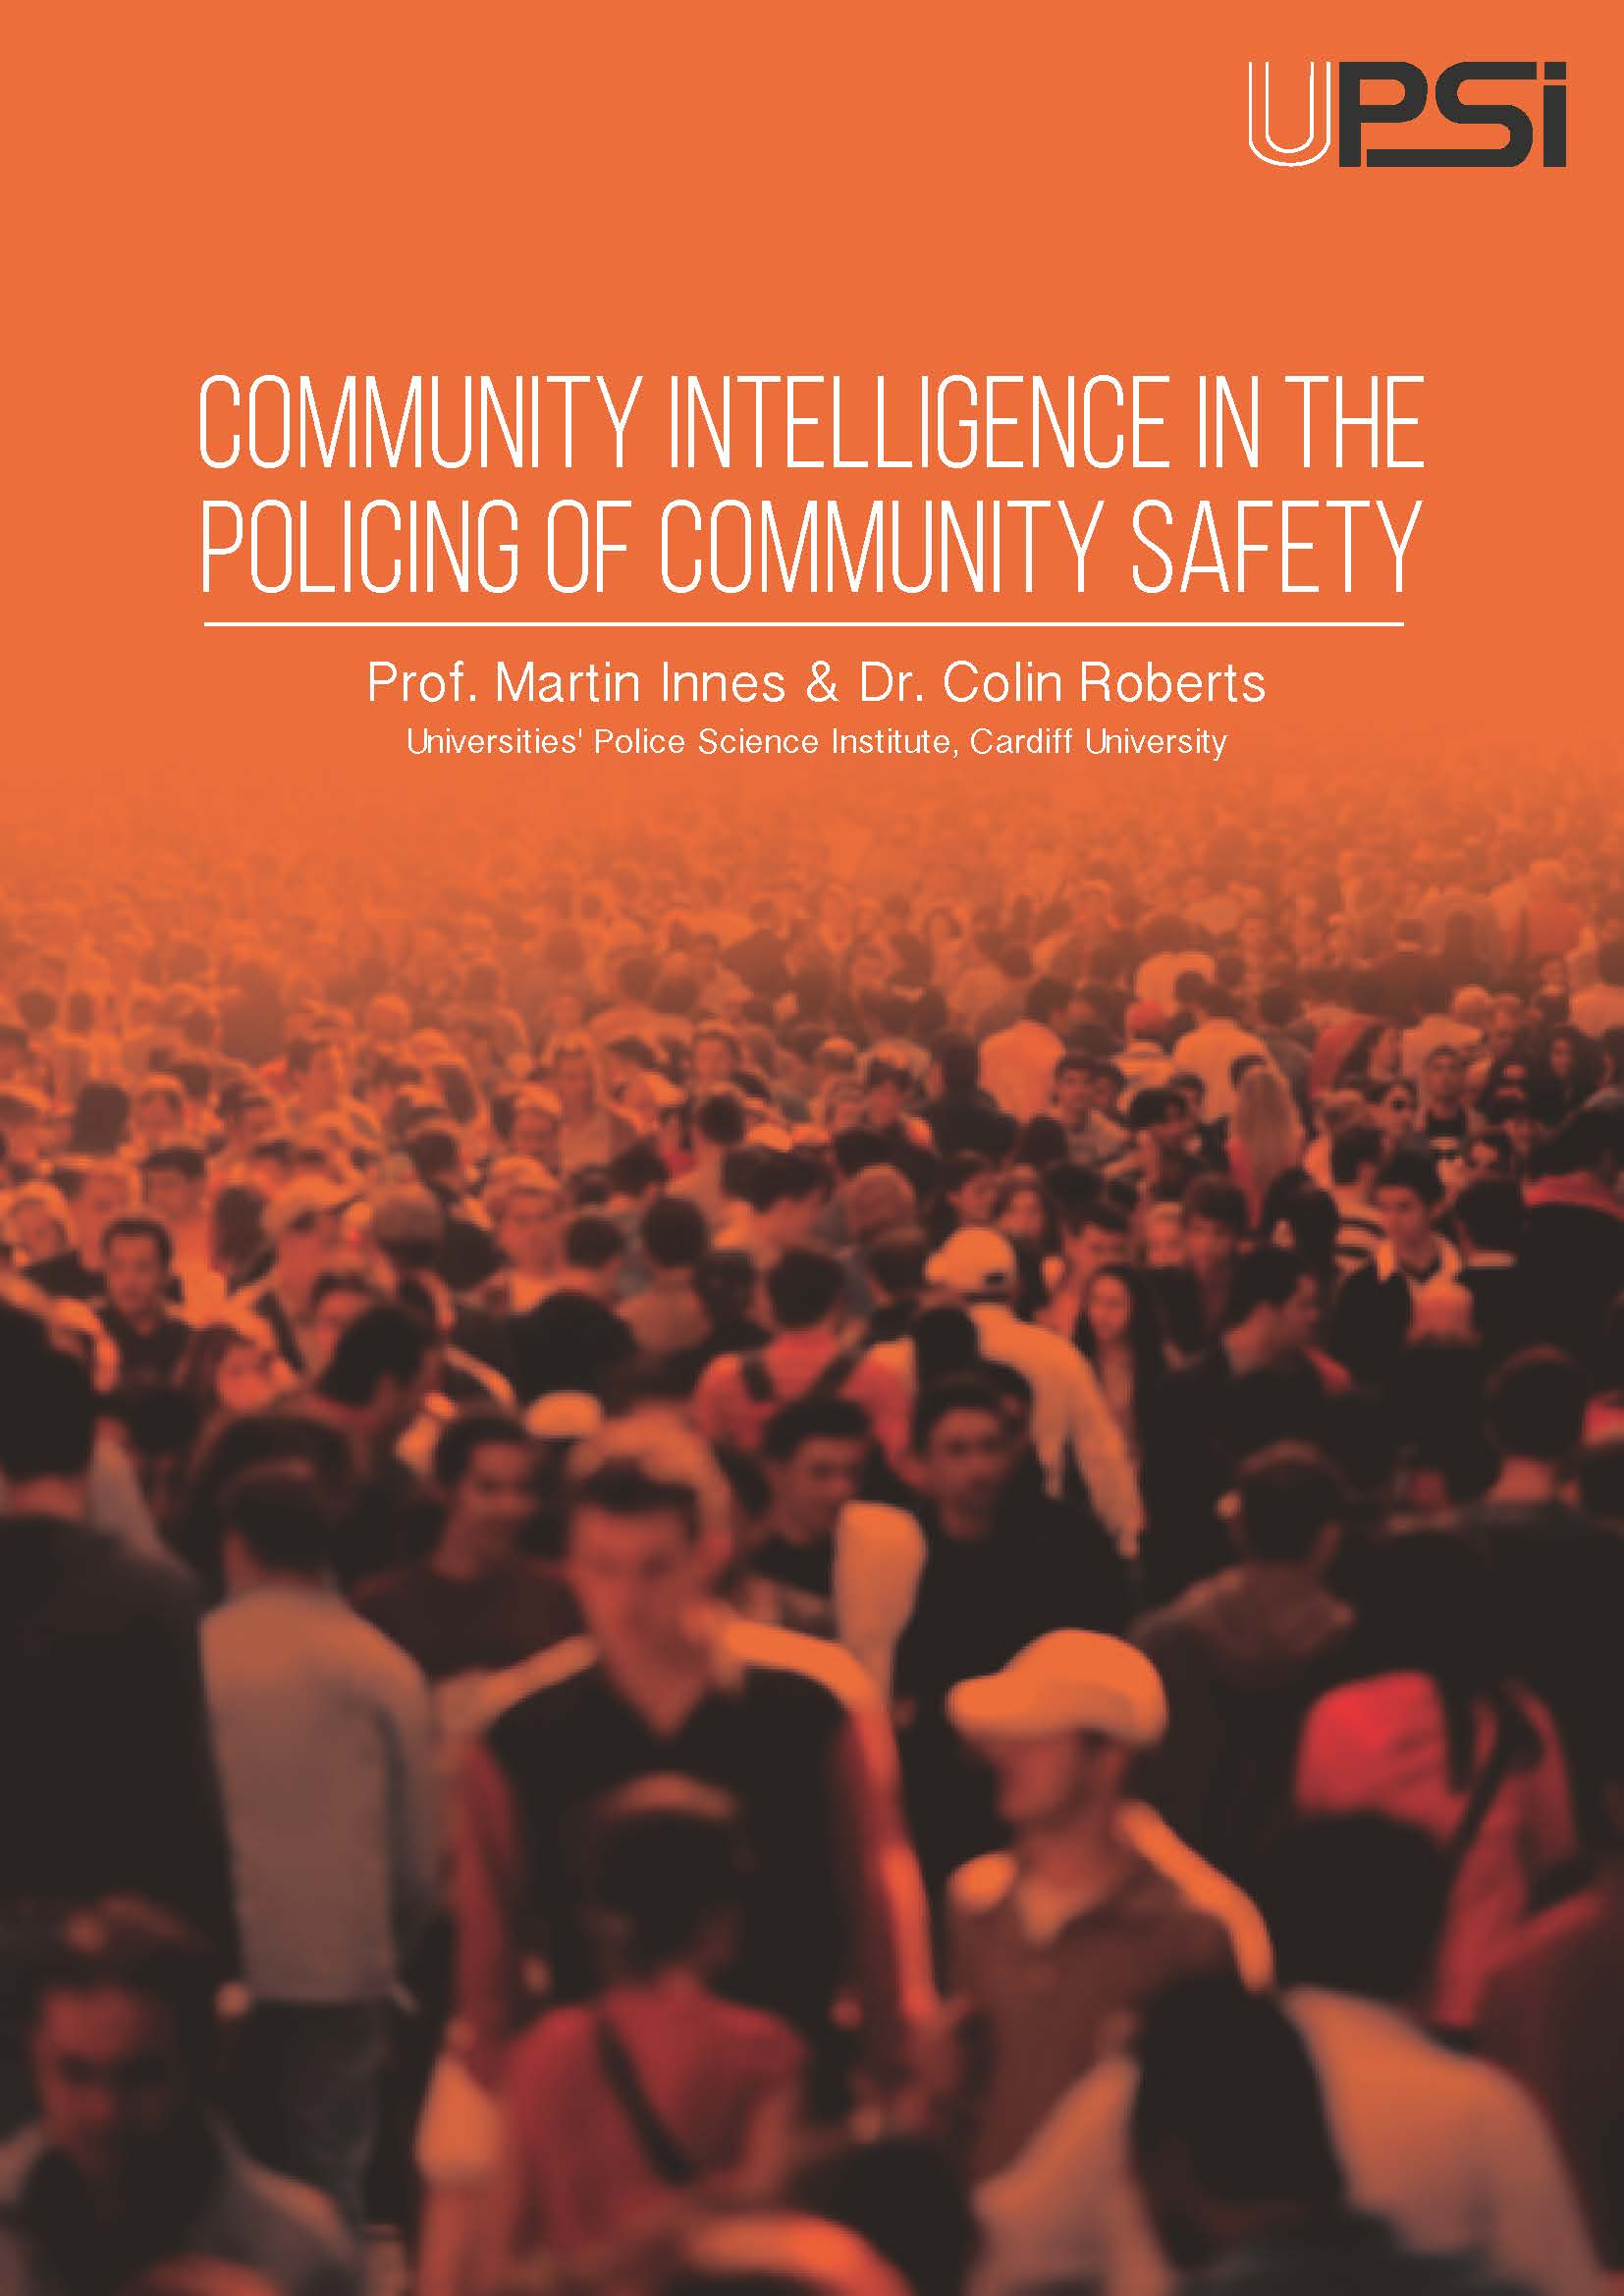 Community Intelligence in the Policing of Community Safety